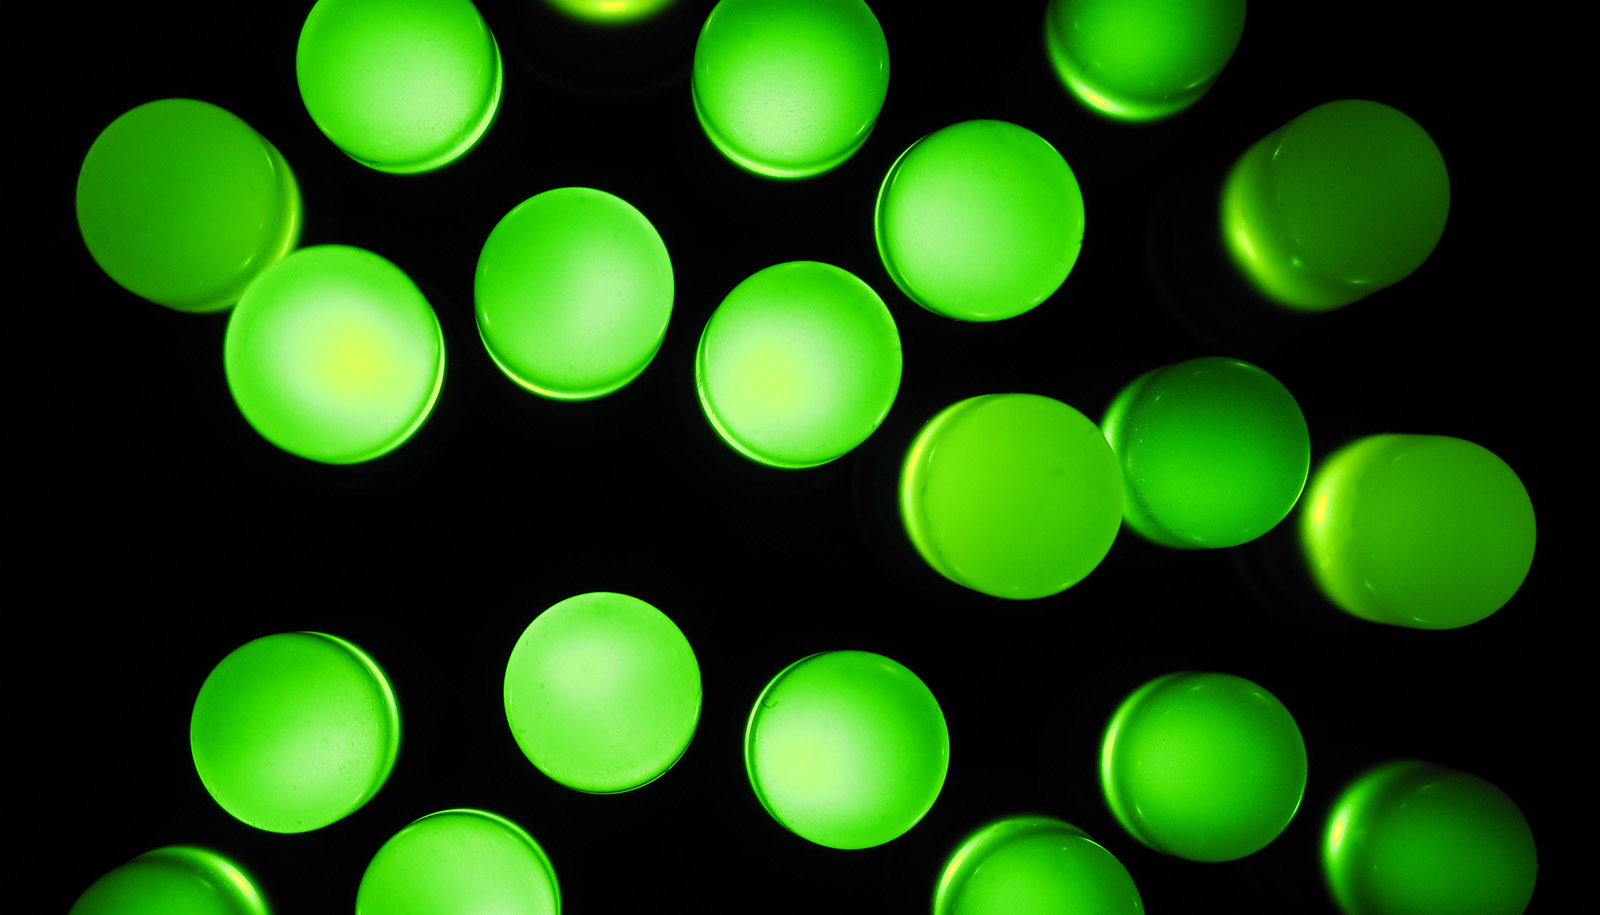 Role of Green Light in Managing Pain